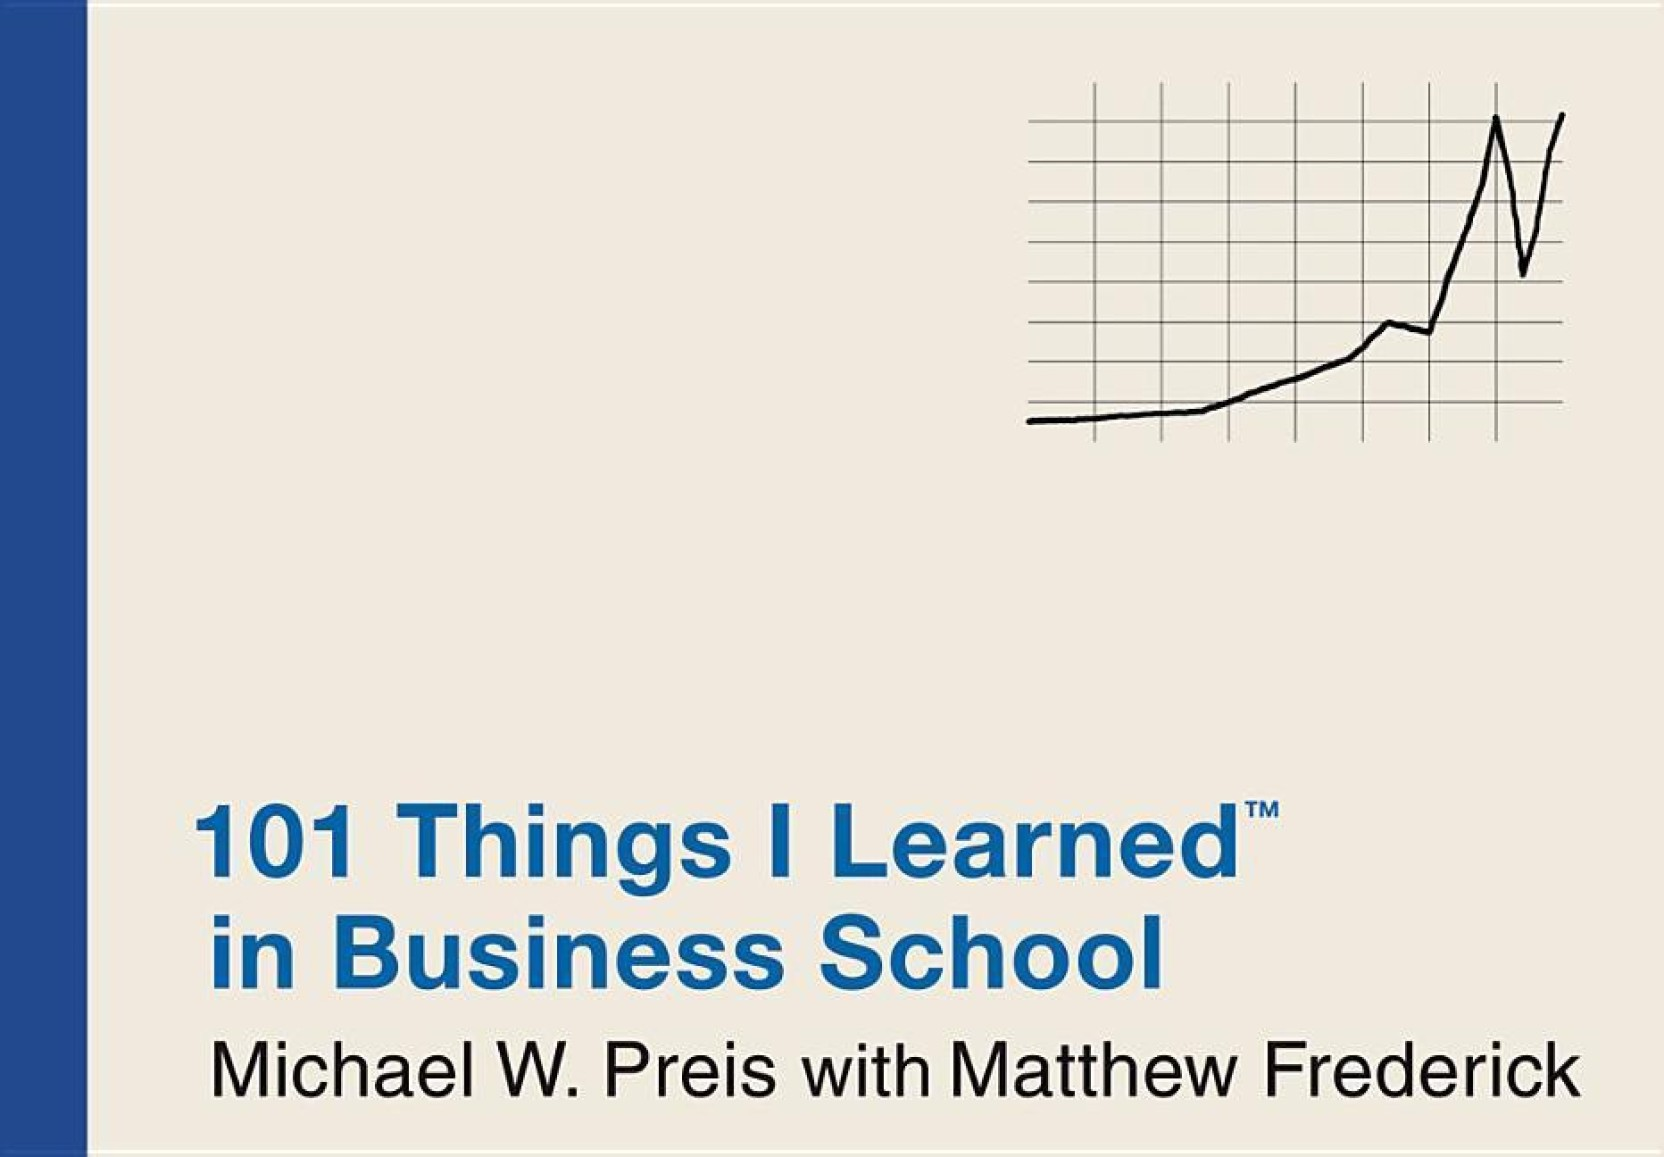 101 Things I Learned (R) in Business School. Home